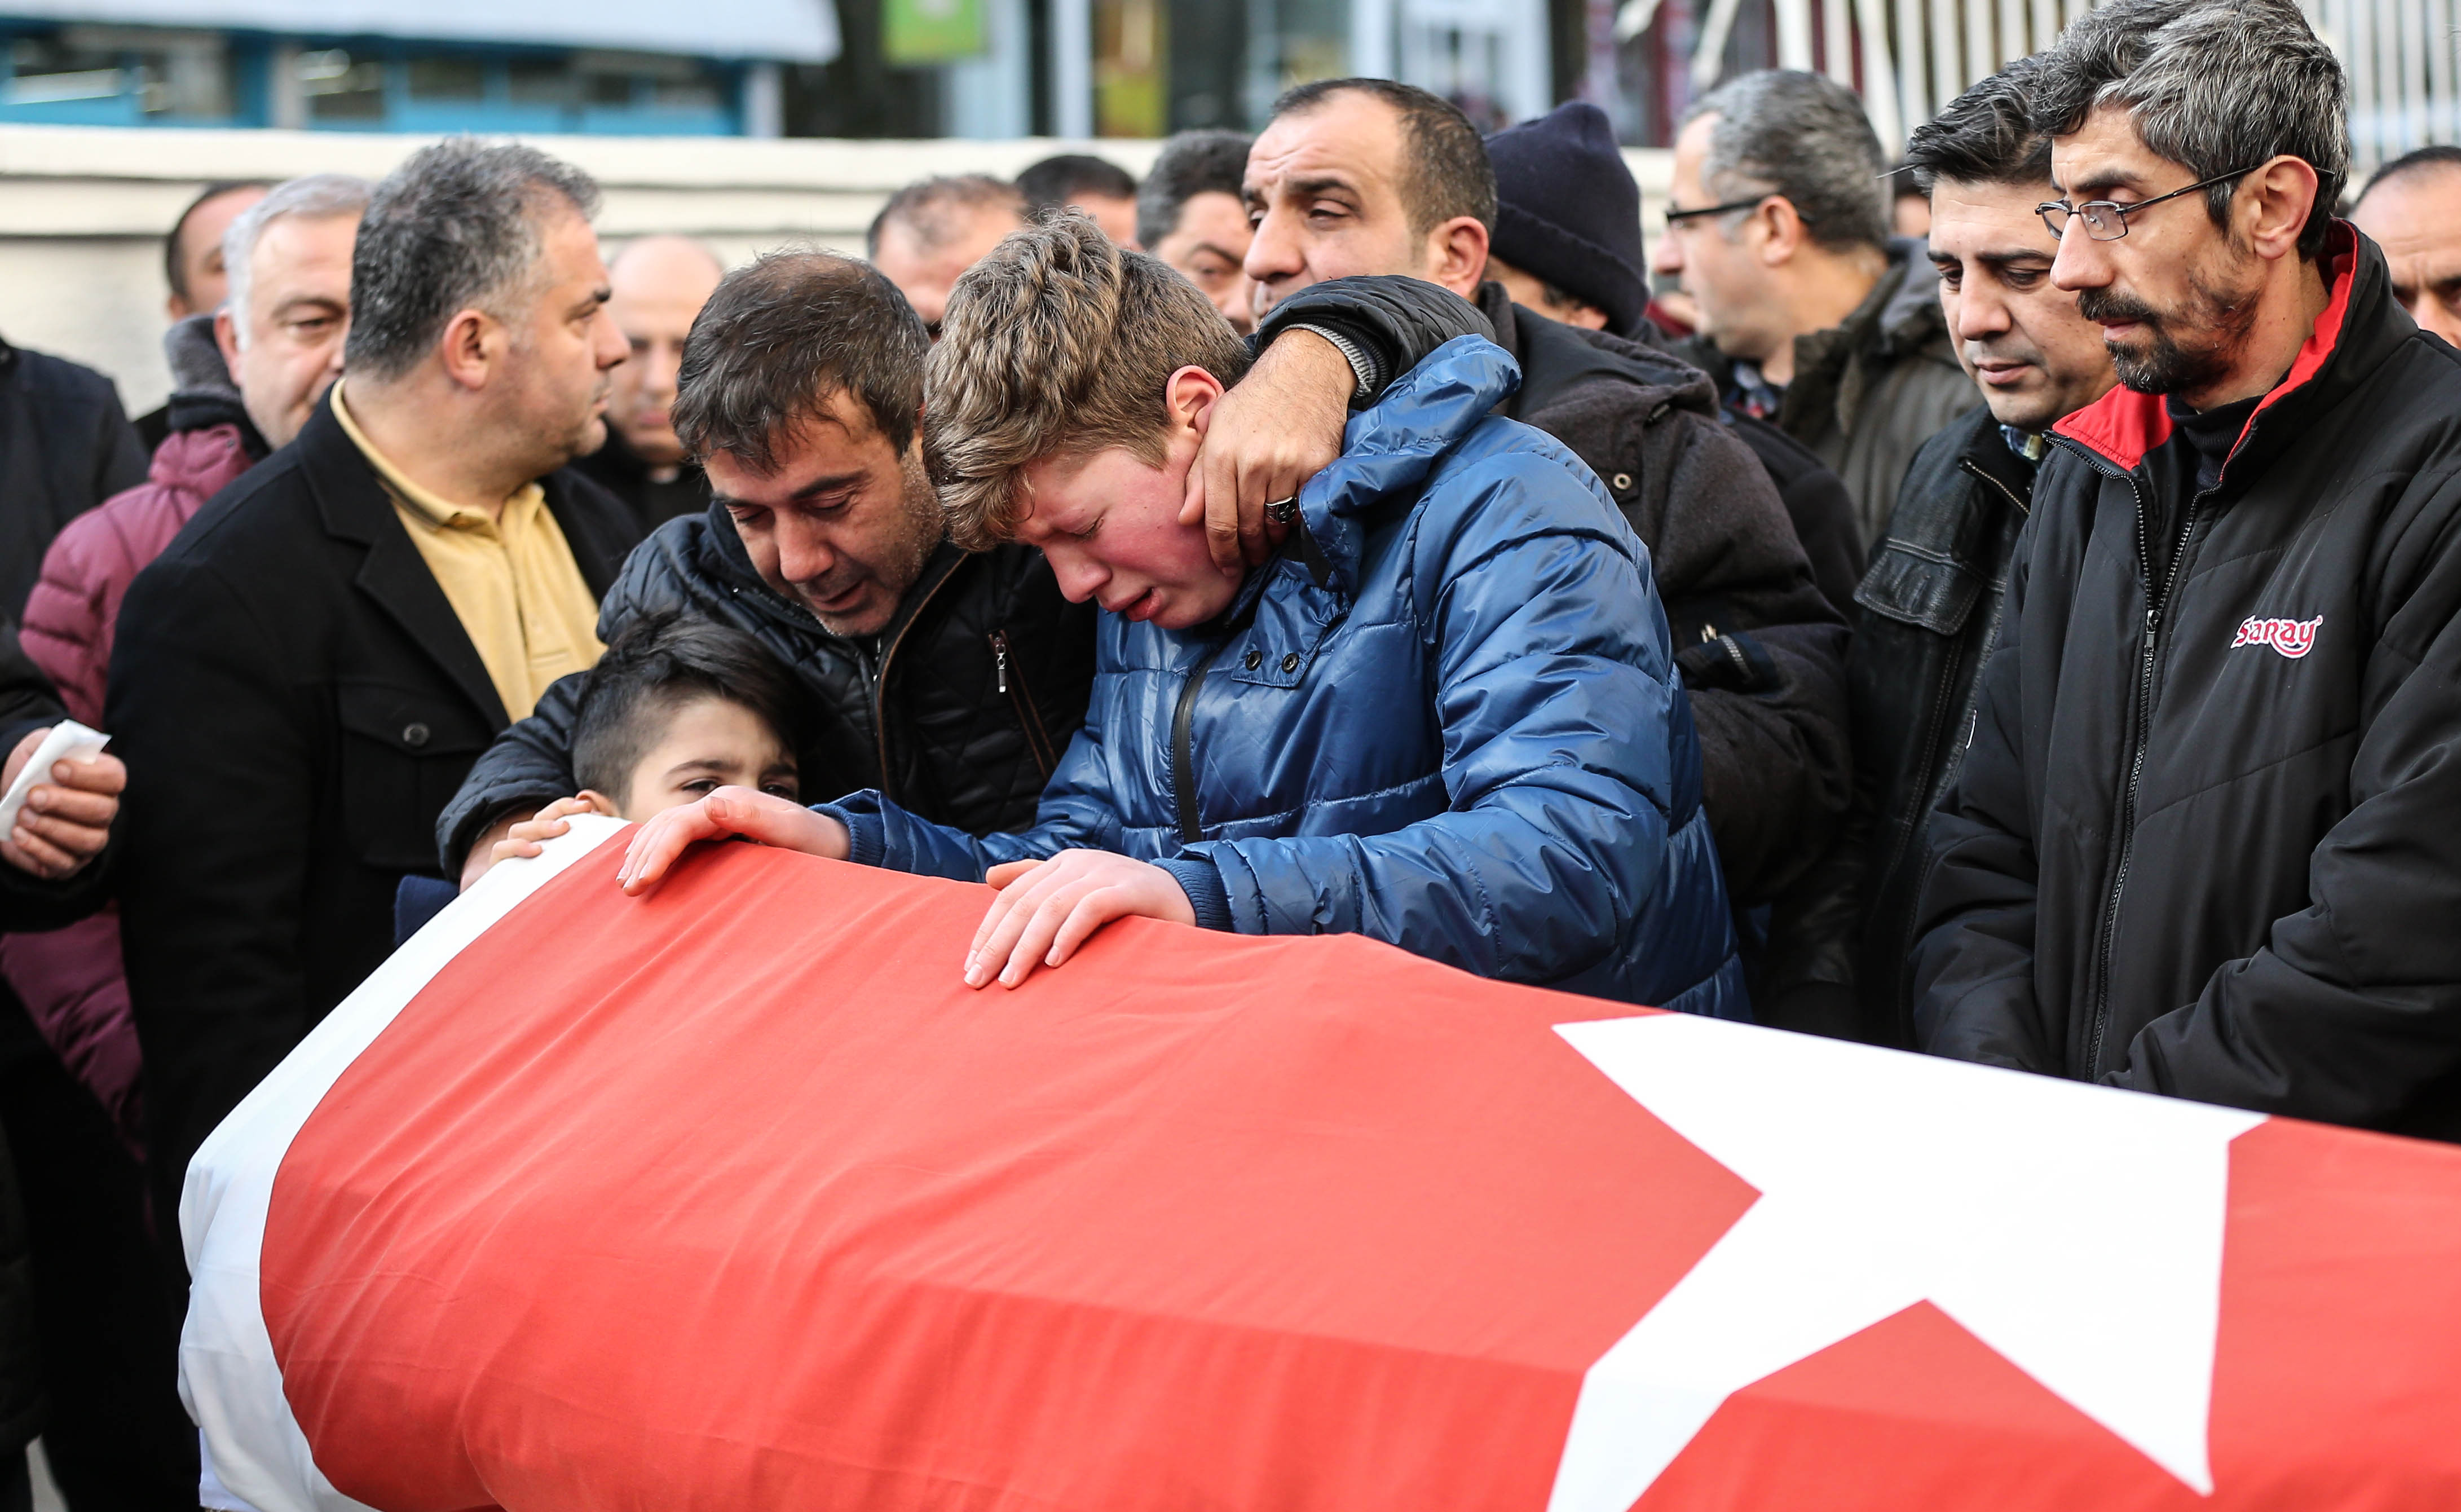 Relatives and friends mourn at a coffin during the funeral of Ayhan Arik, one of the 39 victims of the gun attack on the Reina, a popular night club in Istanbul near by the Bosphorus shores, in Istanbul, January 1, 2017, Turkey. According to Turkey's interior minister Suleyman Soylu at least 39 people, including at least 15 foreigners have been killed dead and 40 wounded at terror attack at Istanbul's famous night club of Reina in Bosphorus shores in the new year party.  (Photo by Burak Kara/Getty Images)